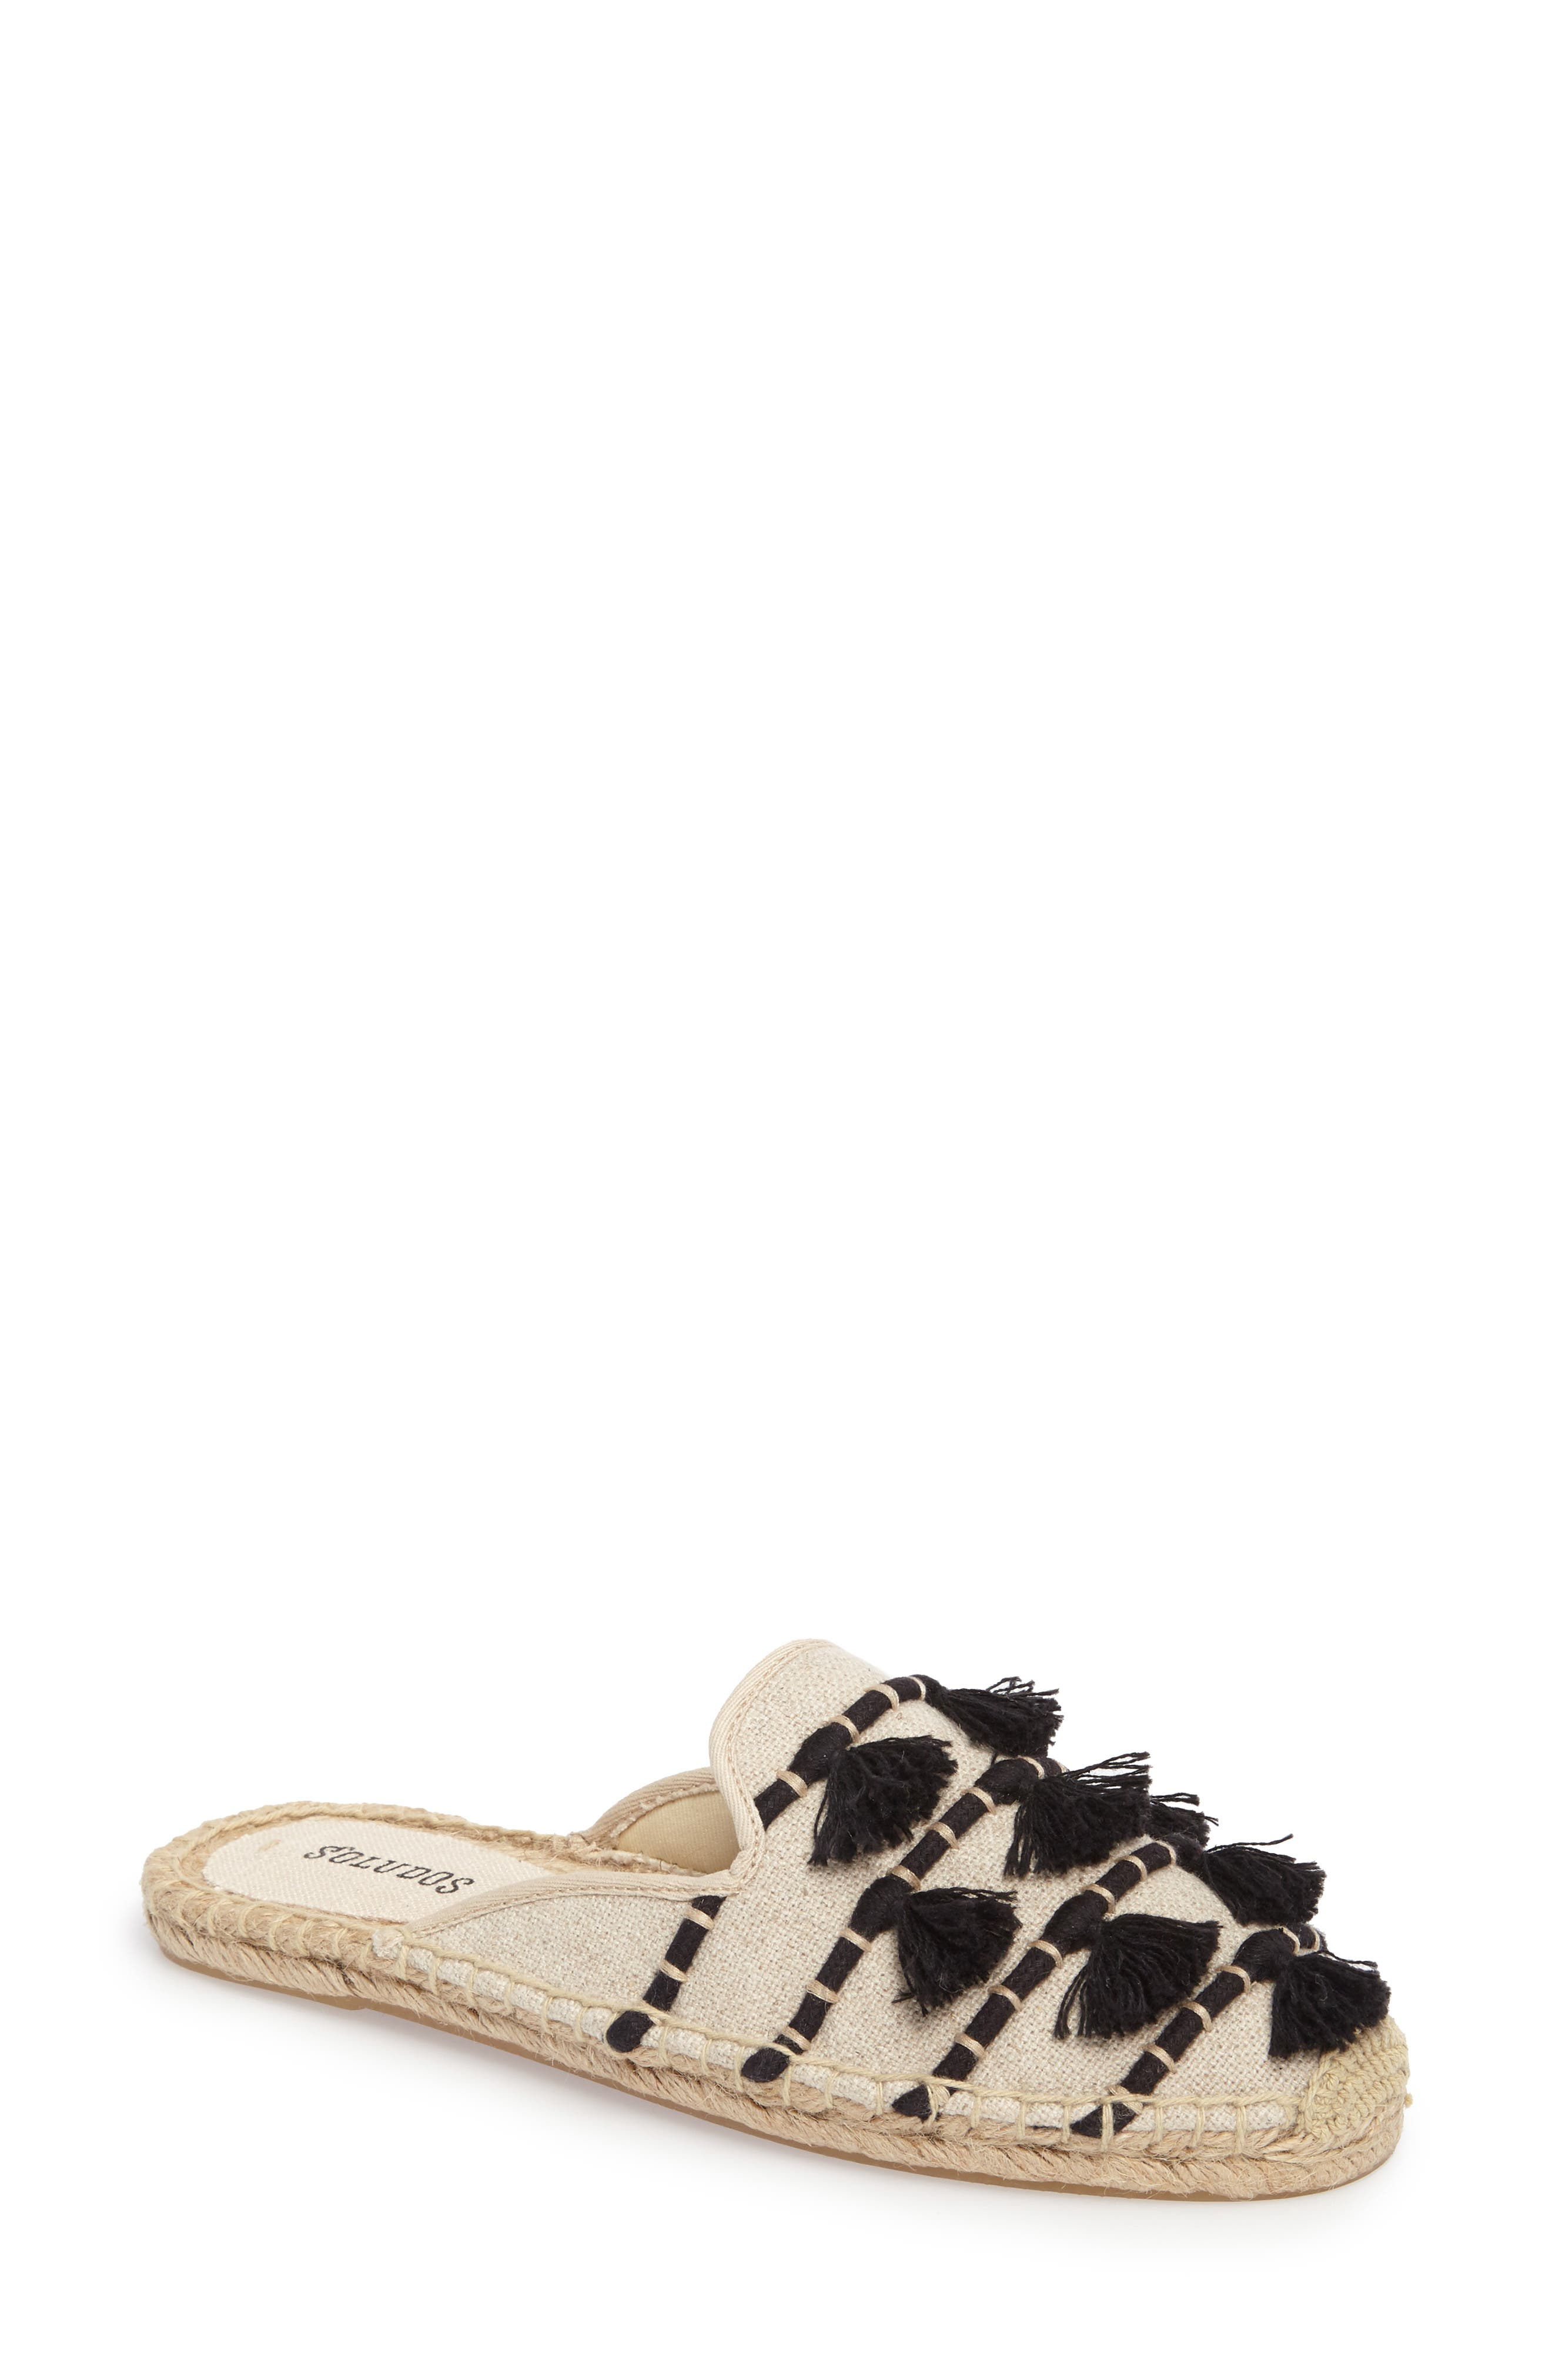 Alternate Image 1 Selected - Soludos Tassel Espadrille Mule (Women)